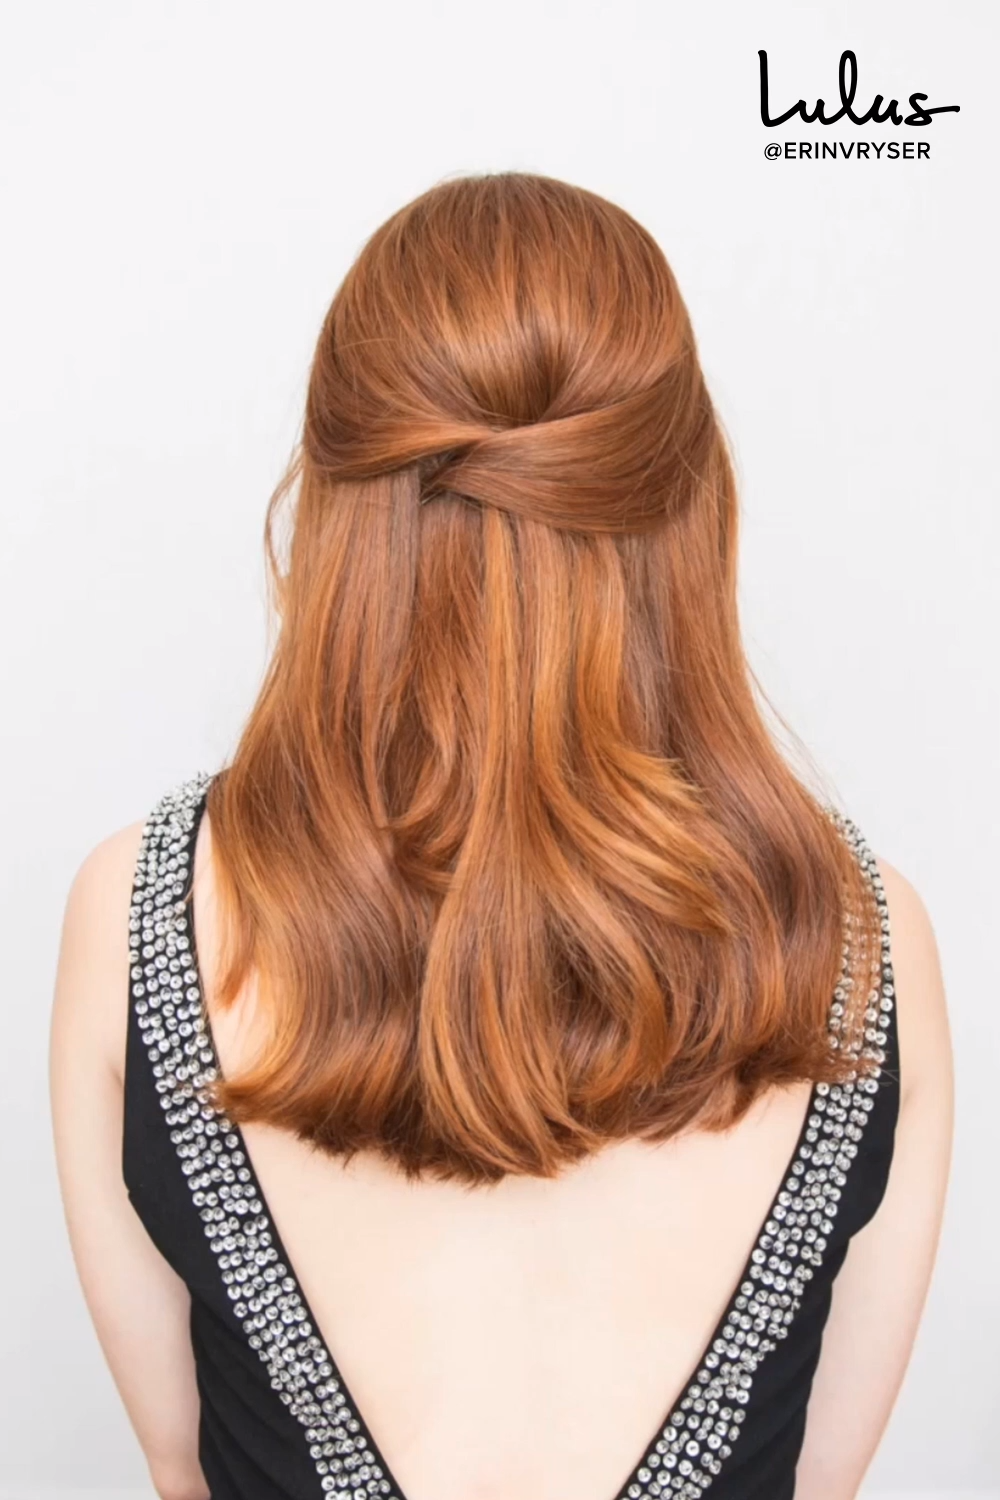 Hair How-To: This Criss-Cross Half-Up Hairstyle is Your Party Season Secret Weapon -   16 hair Half Up Half Down how to do ideas